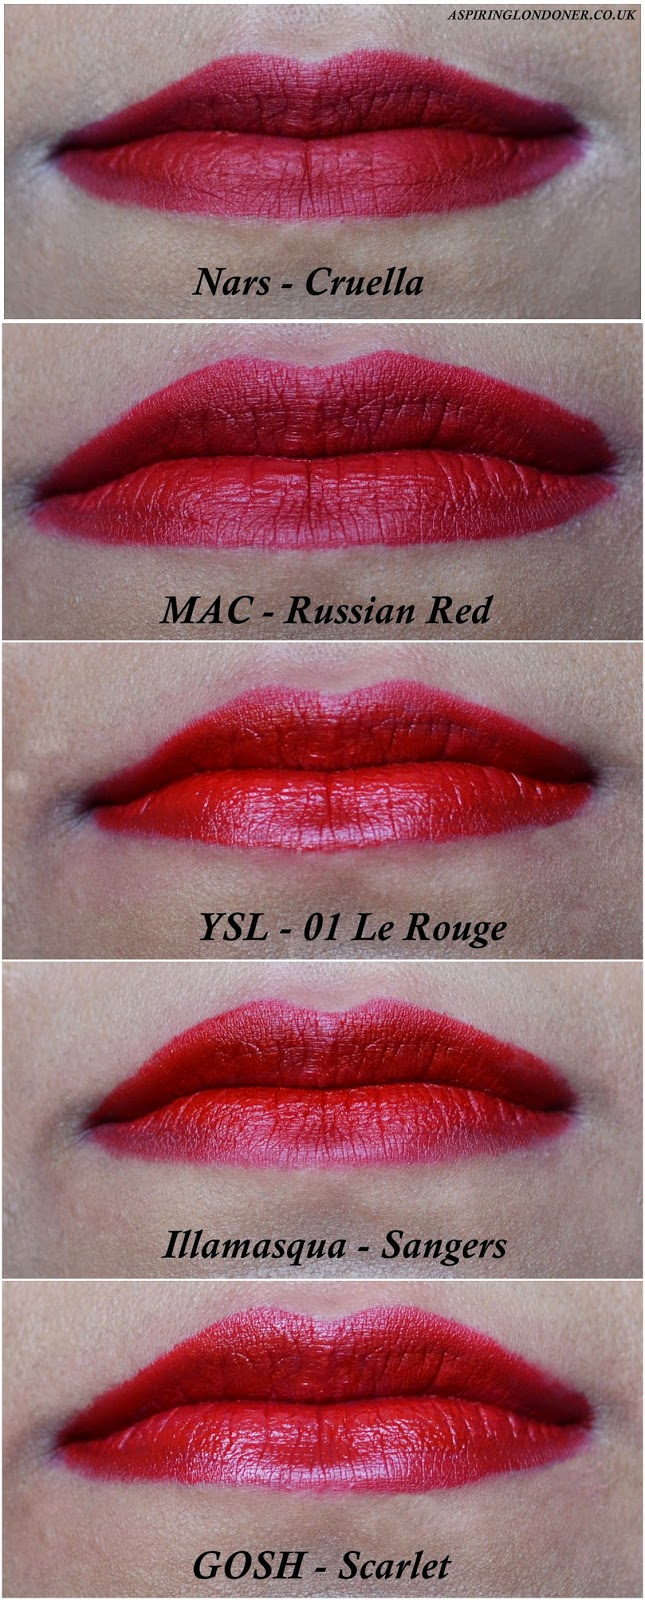 Five Festive Red Lipsticks ft Nars, YSL, Illamasqua, MAC & GOSH Swatches - Aspiring Londoner